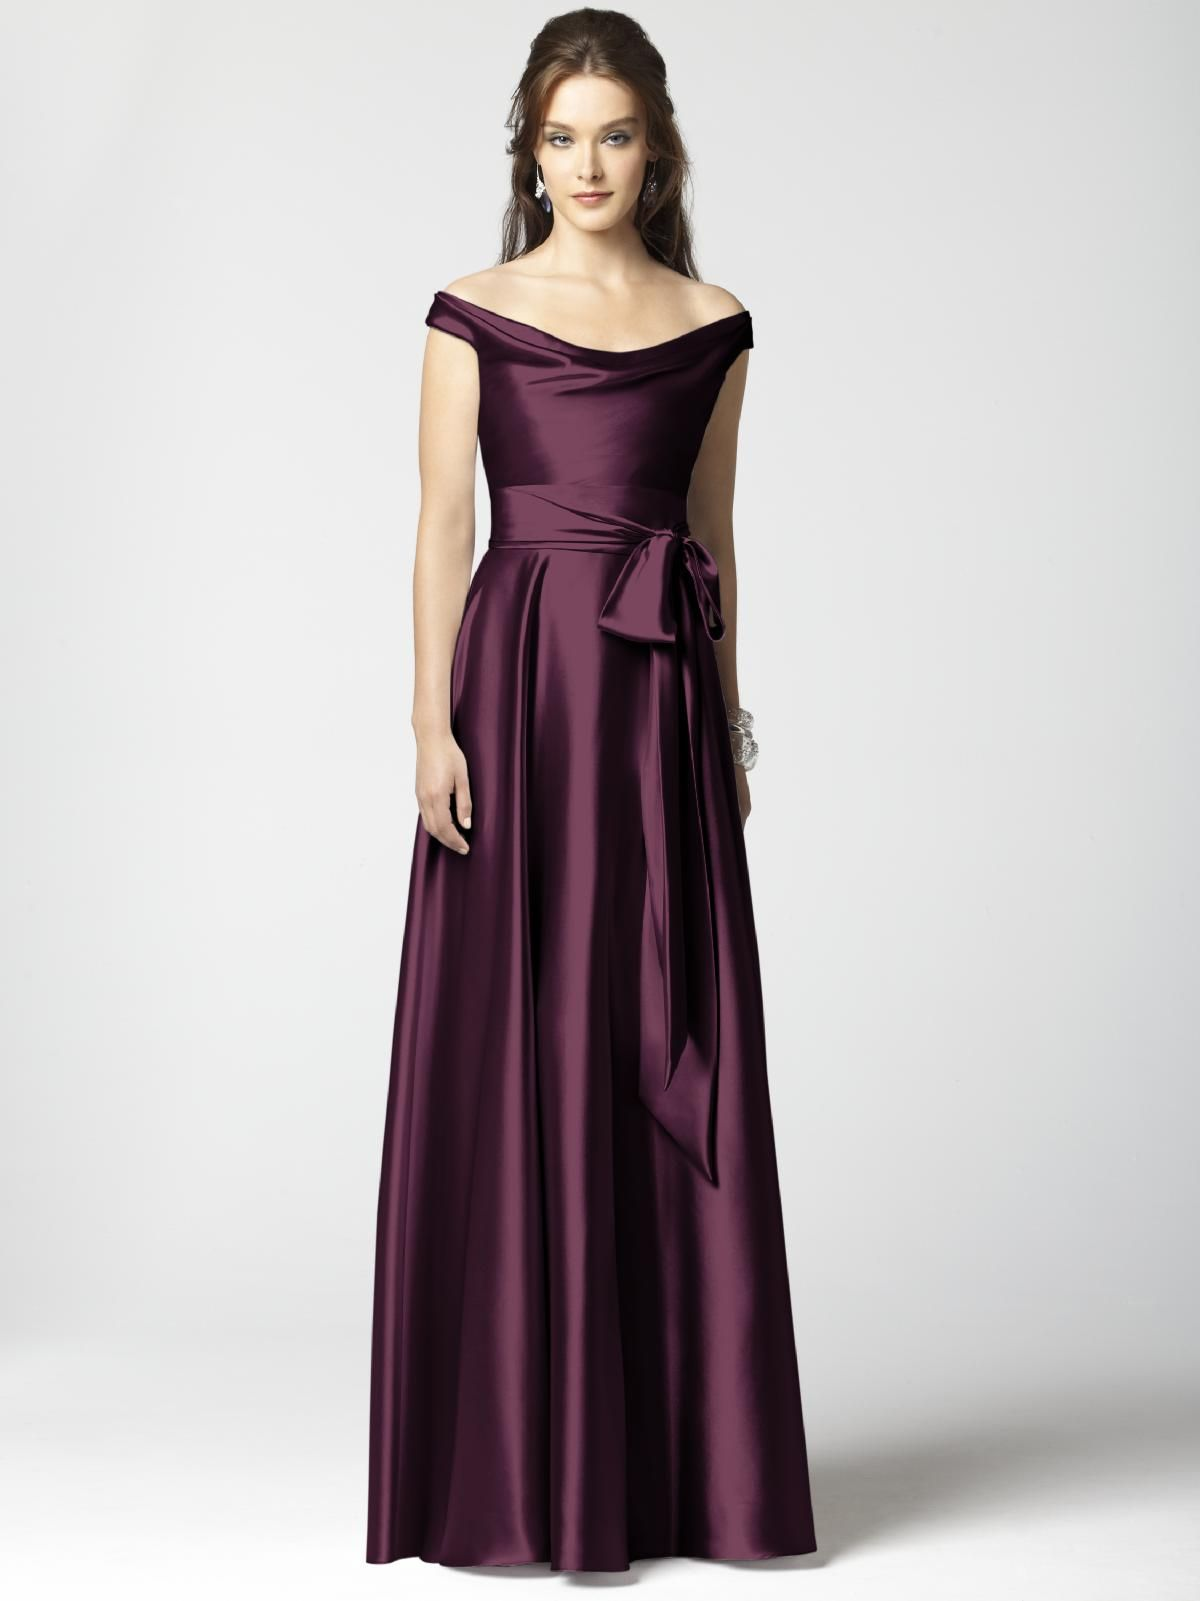 Dessy Collection Style 2864 #purple #bridesmaid #dress | PURPLE ...